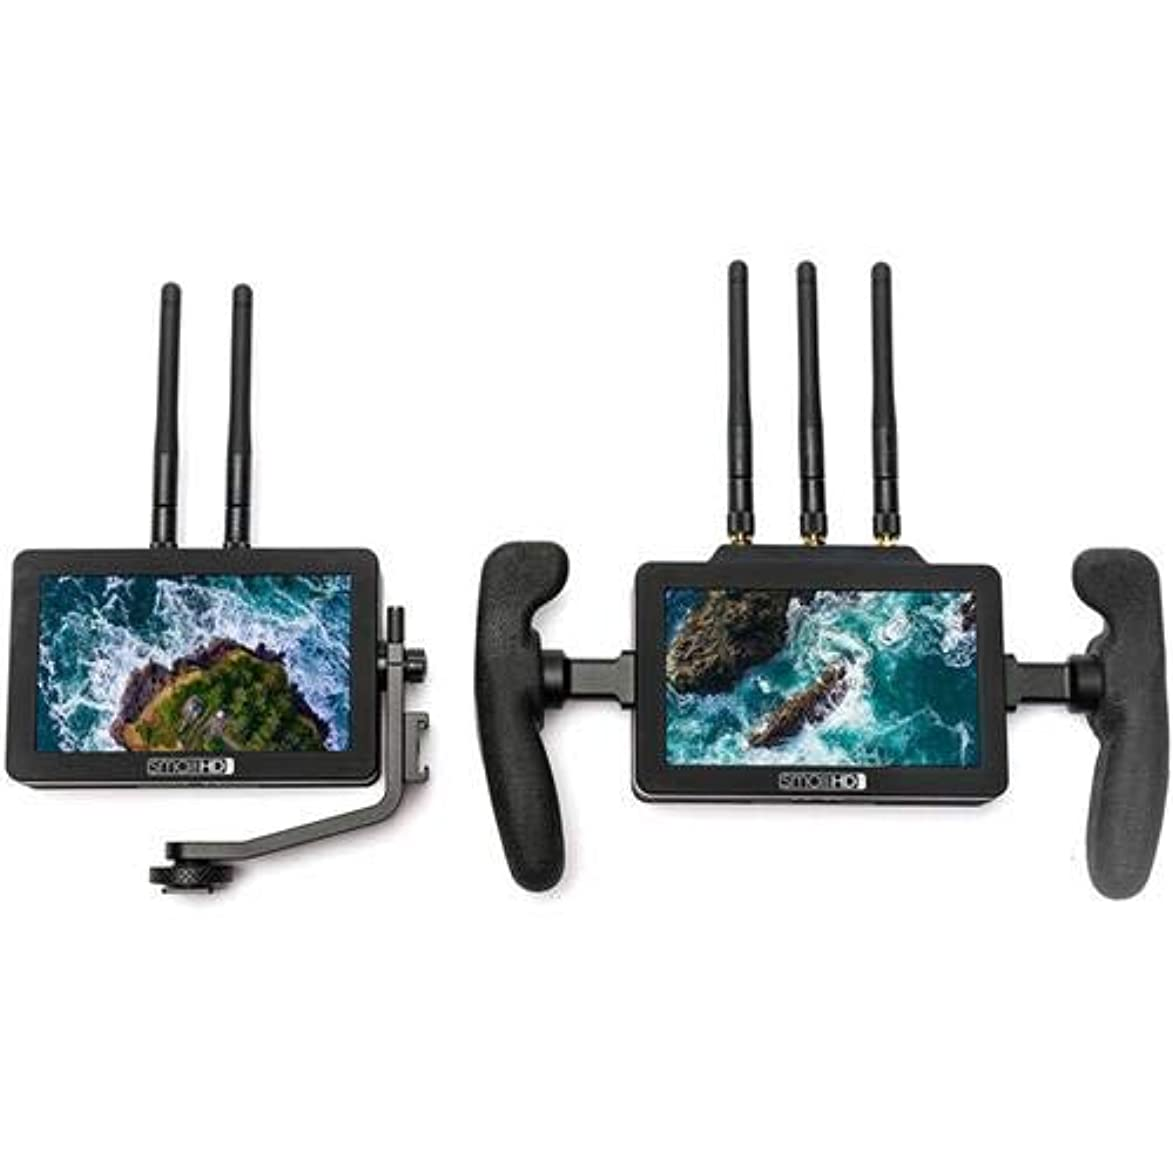 SmallHD Focus Bolt 500 TX-RX Kit 5-Inch Daylight Viewable Touchscreens with a Built-in Teradek Transmitter/Receiver